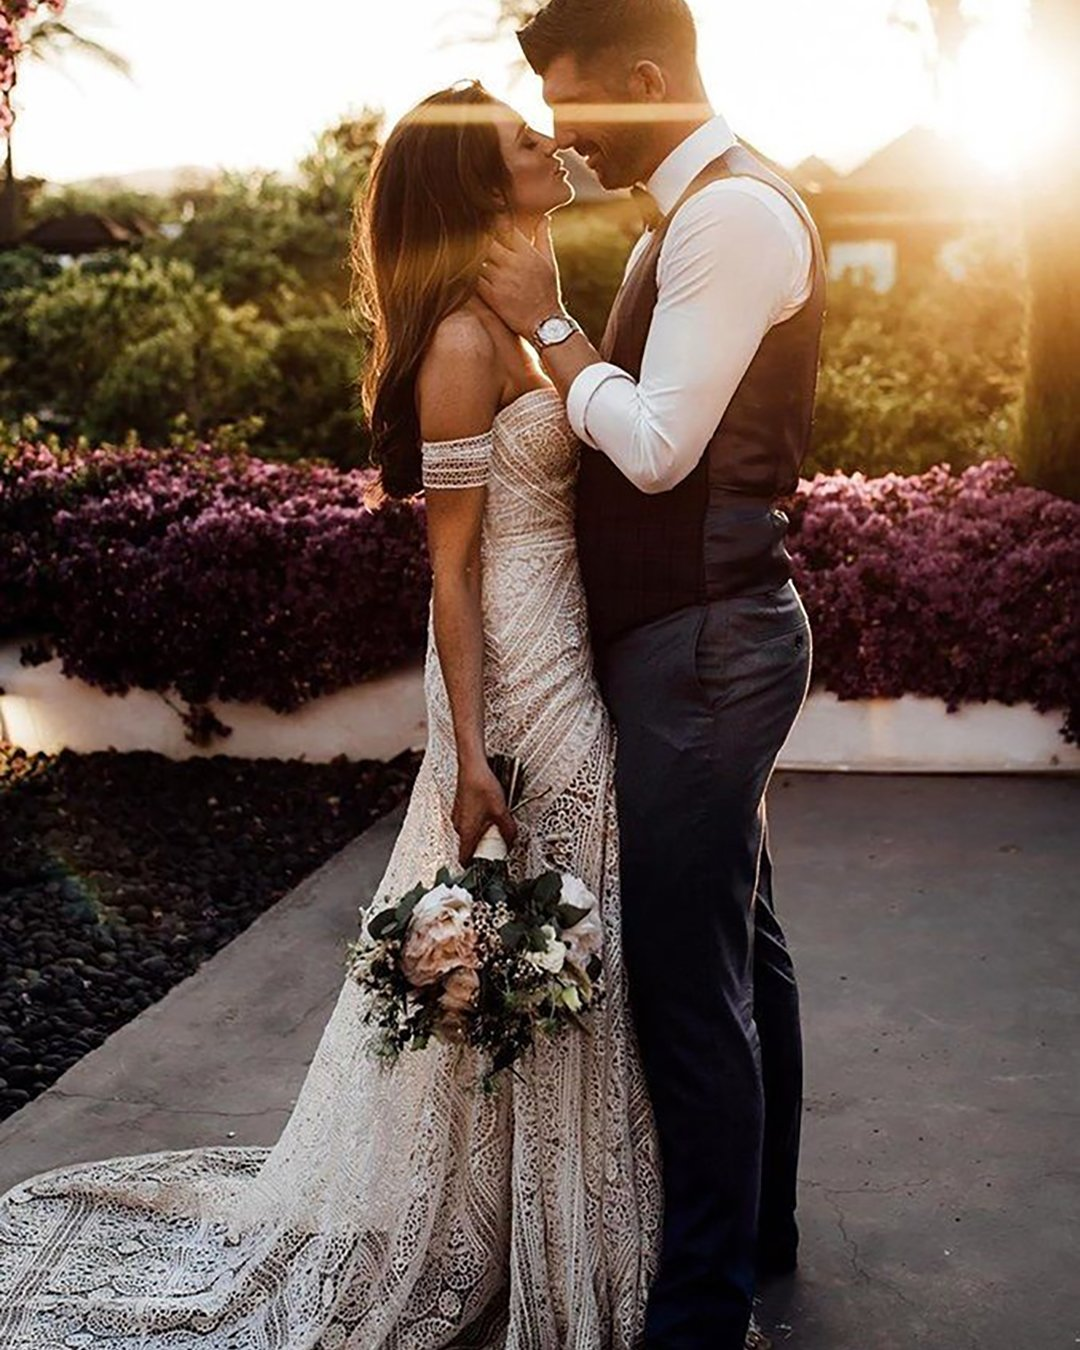 cute wedding photos tender couple at sunset tali_photography